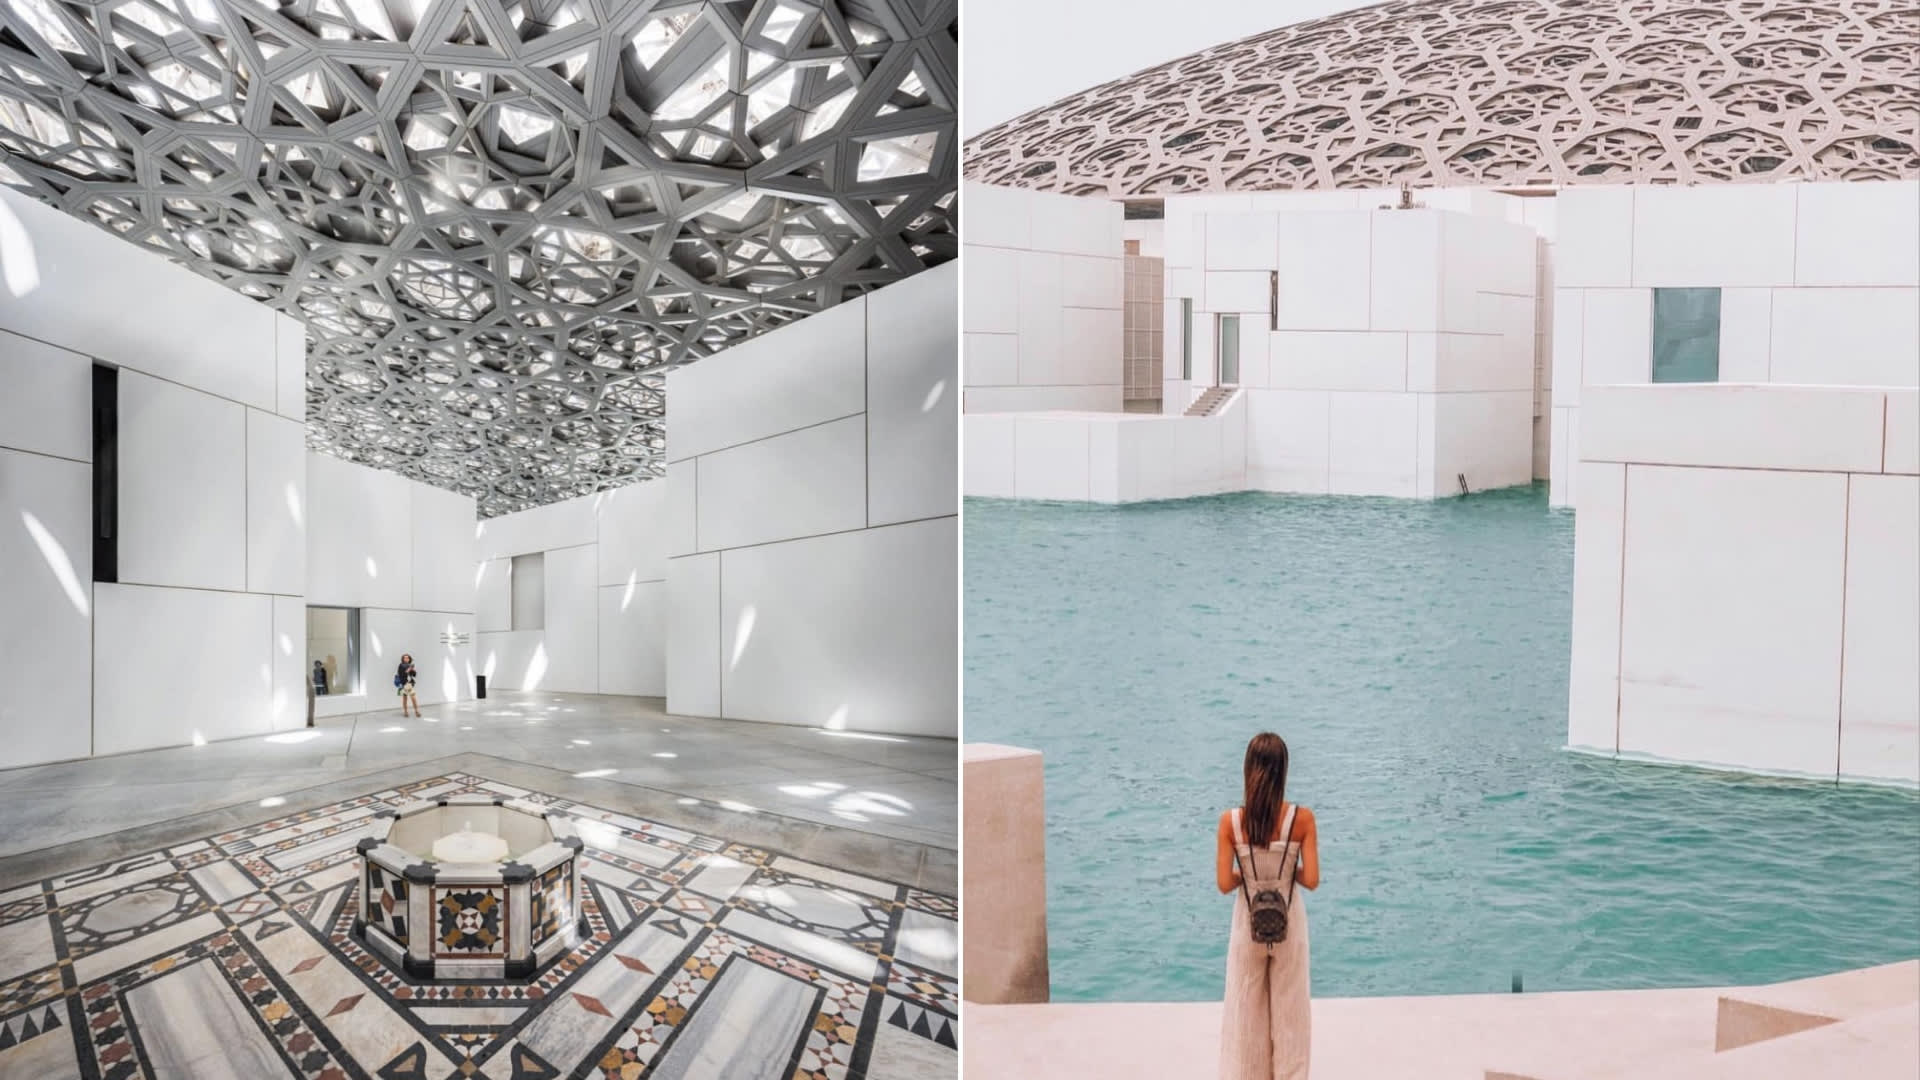 10 Instagram-worthy Spots in UAE That Your Friends and